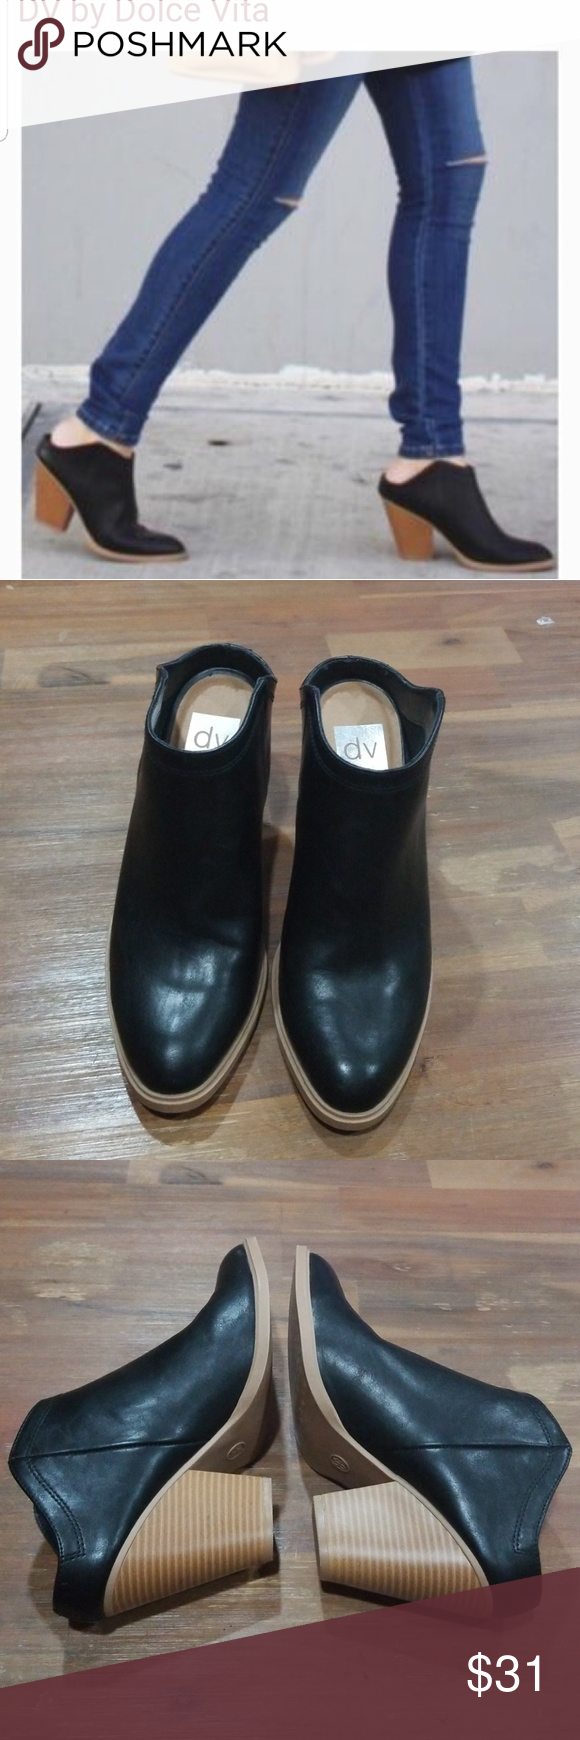 e6007553cb3c DV Nya Target Black vegan Leather mule bootie 8.5 Step into fall with these DV  Dolce